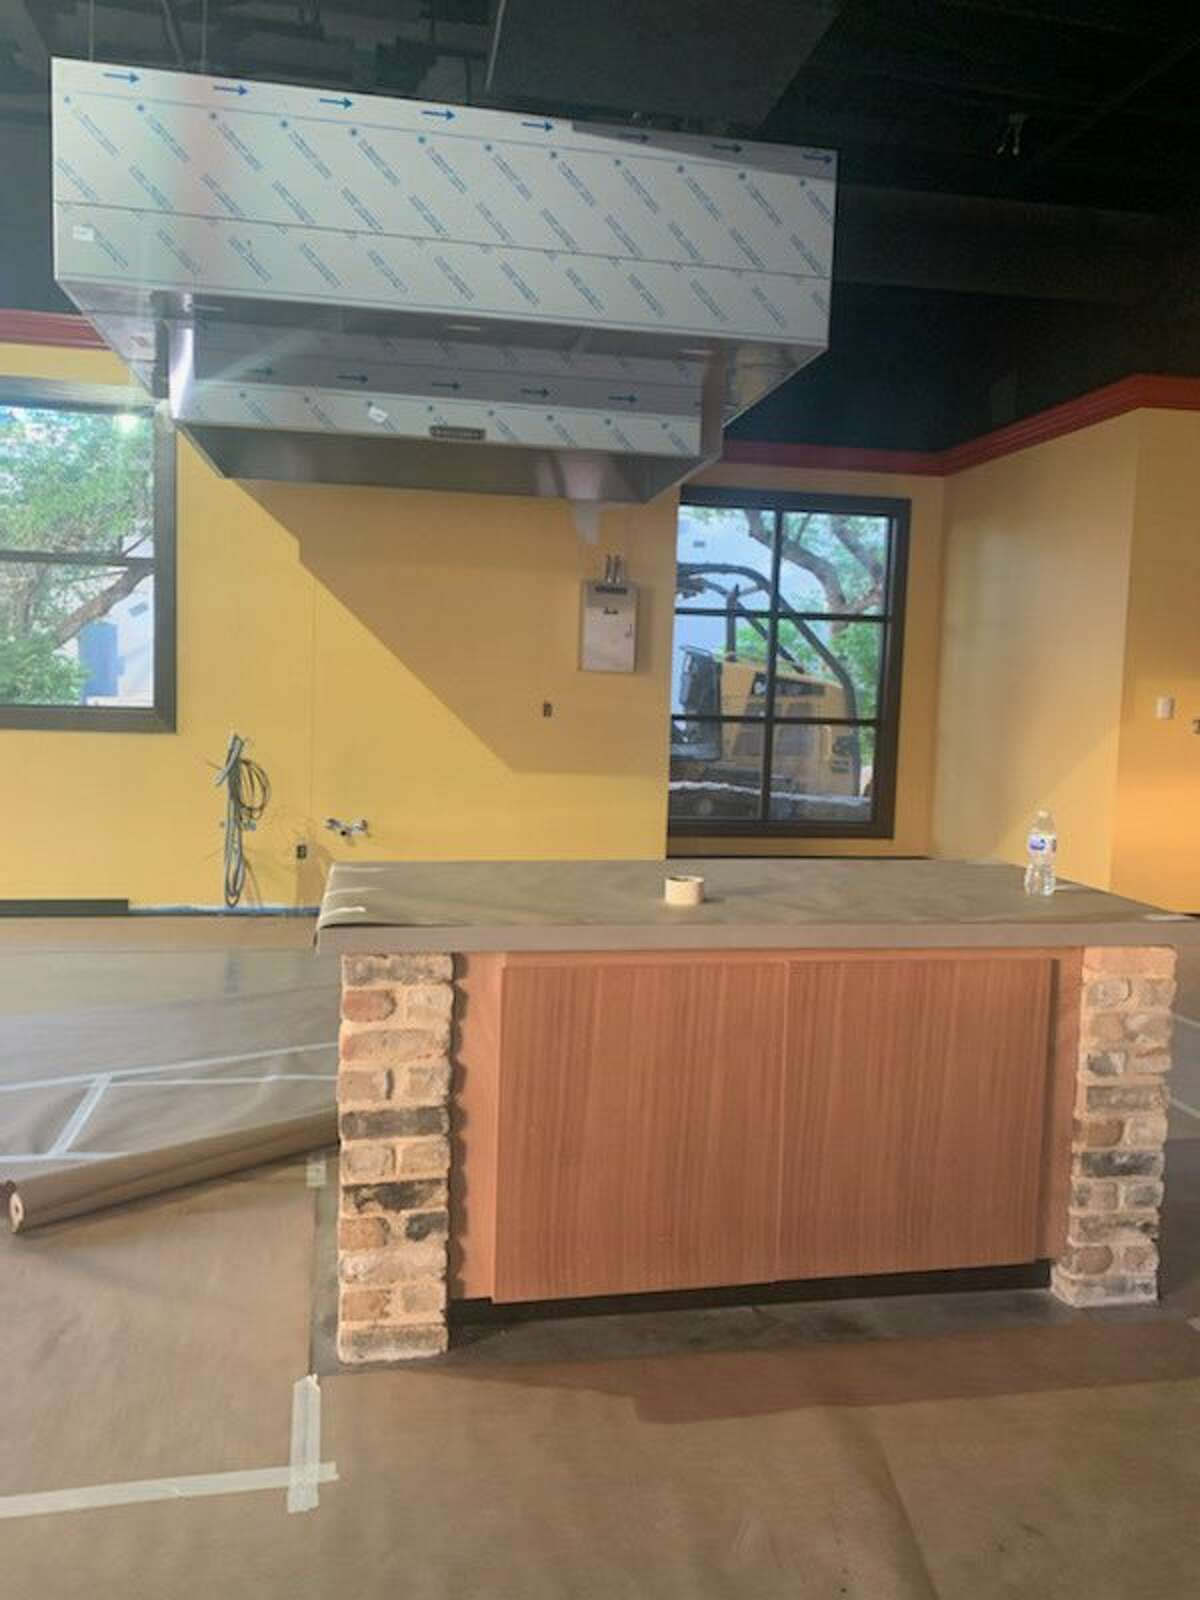 Construction of San Antonio's first Delia's Tamales location is still underway during the COVID-19 pandemic. Spokesman John King said the building, located at 13527 Hausman Pass near Loop 1604, is